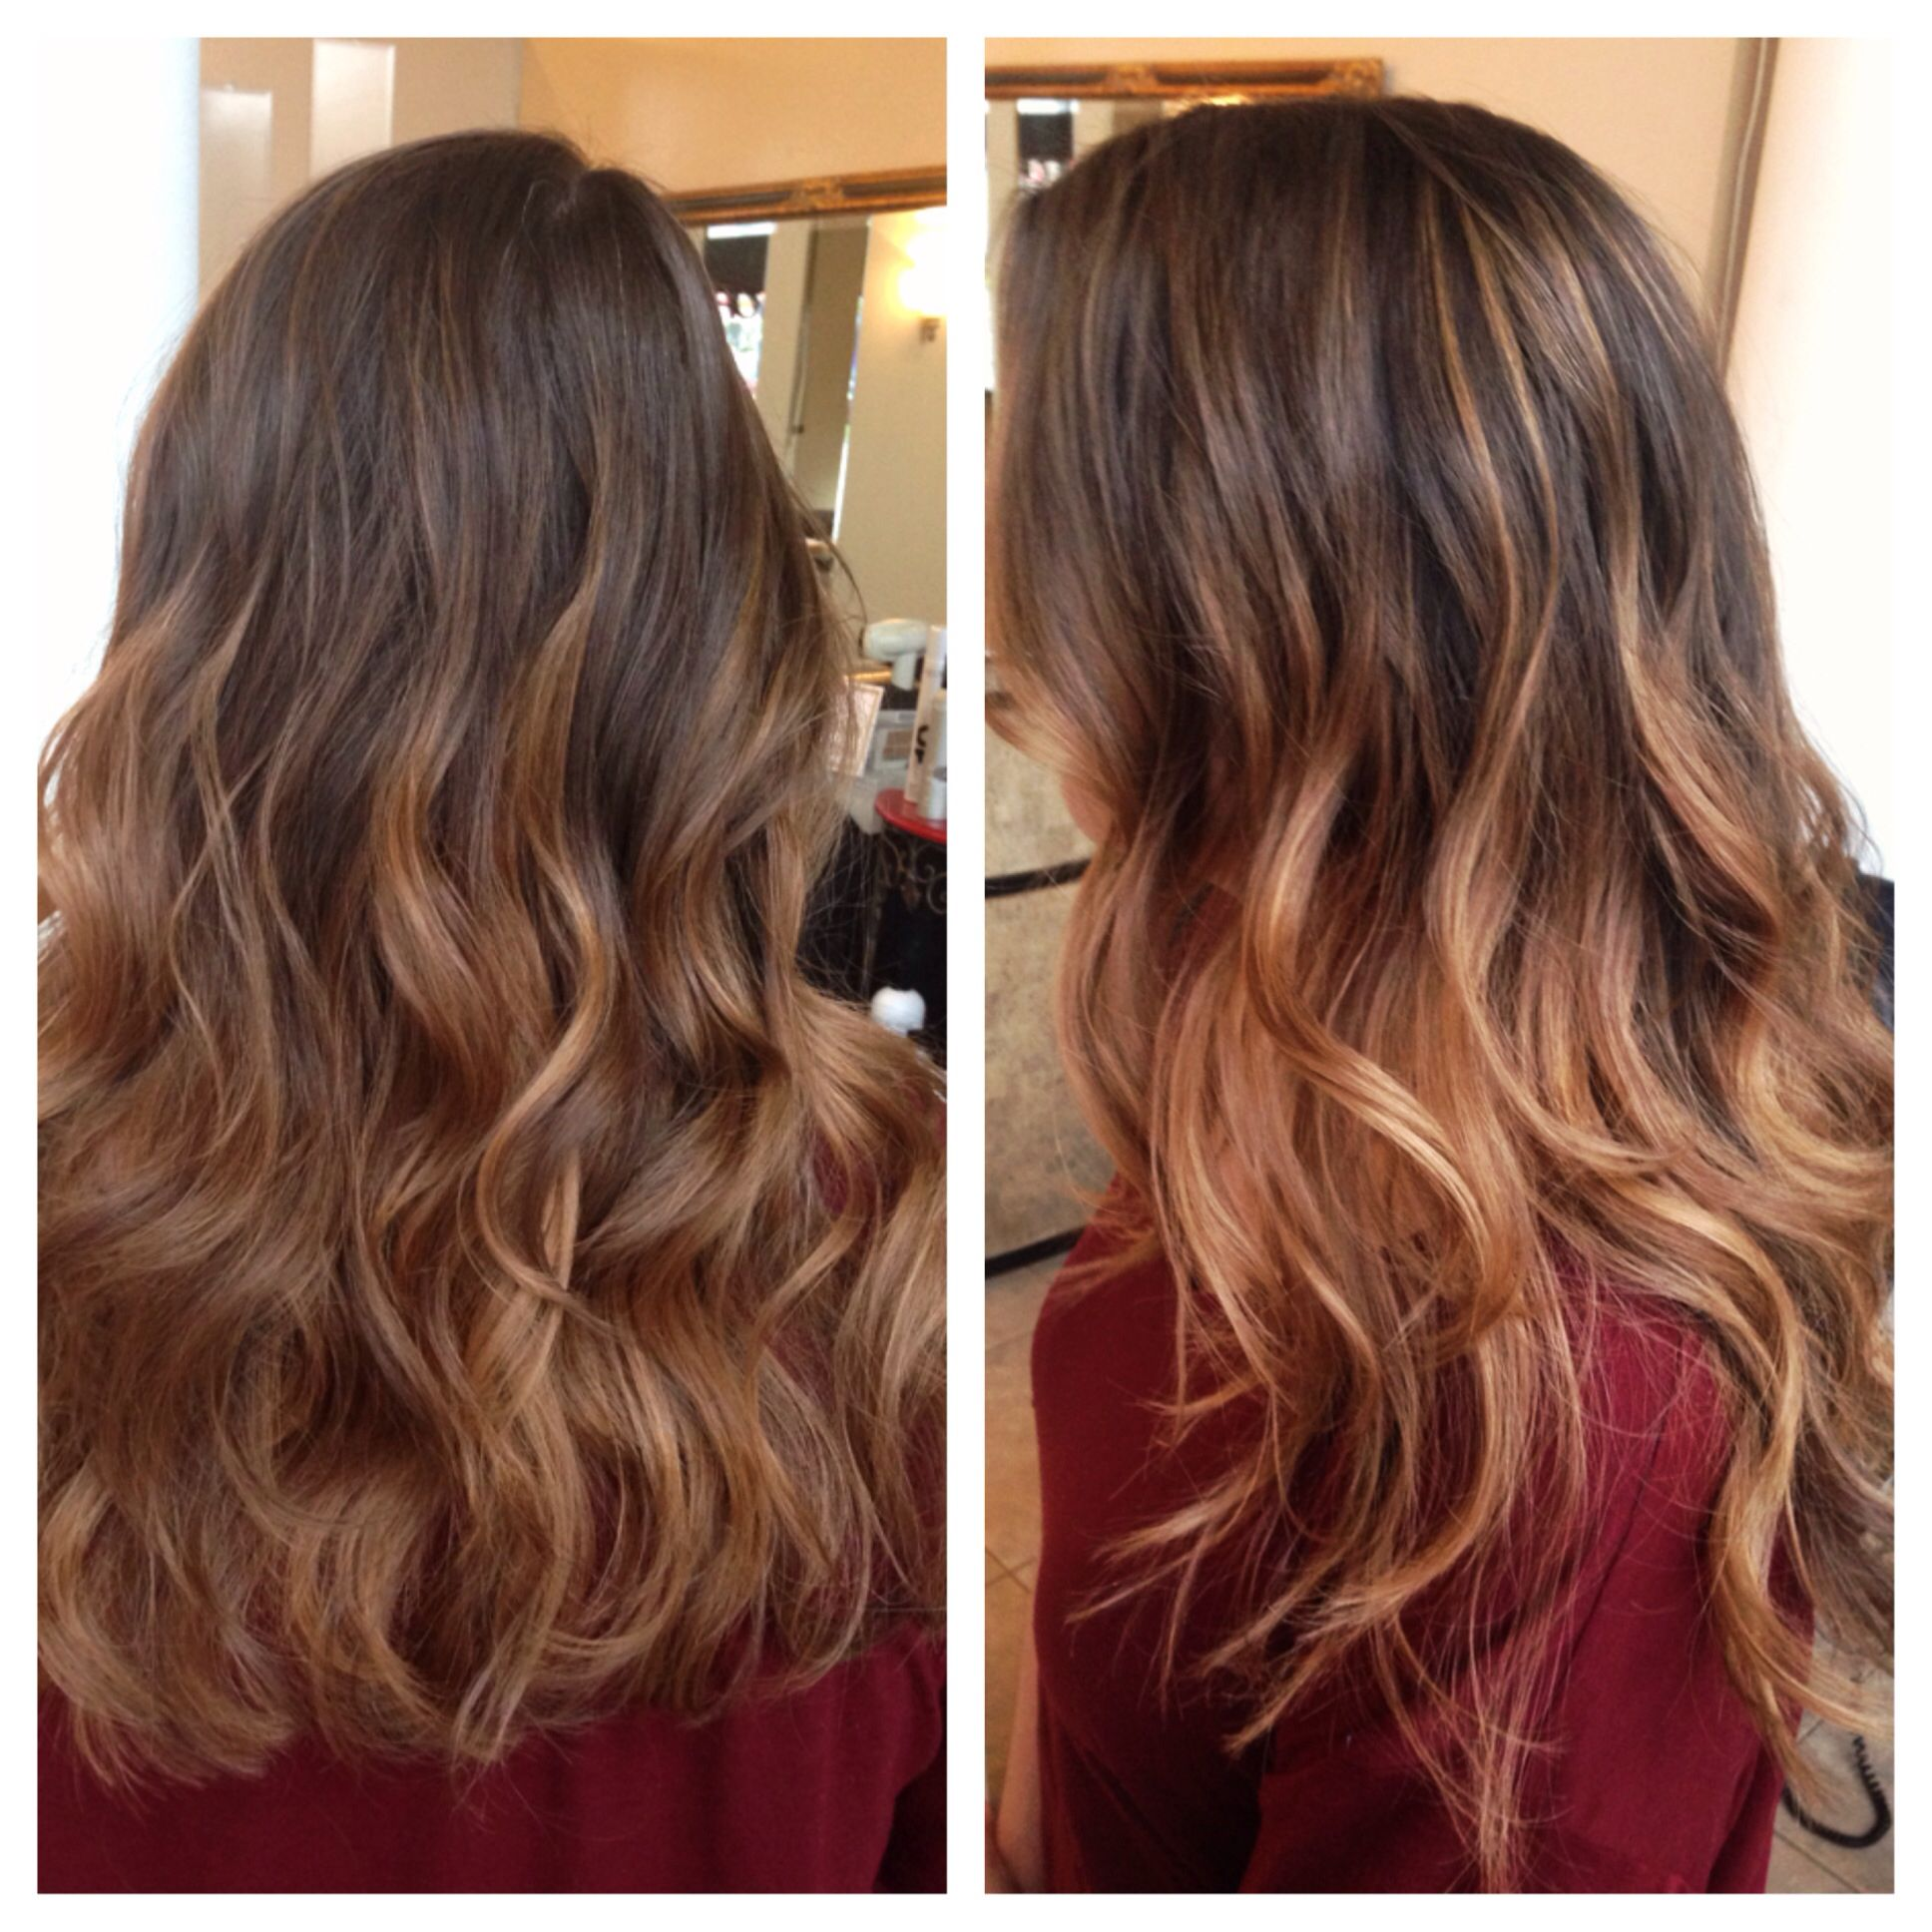 Balayage Ombre Highlights Balayage Ombr 233 Highlights